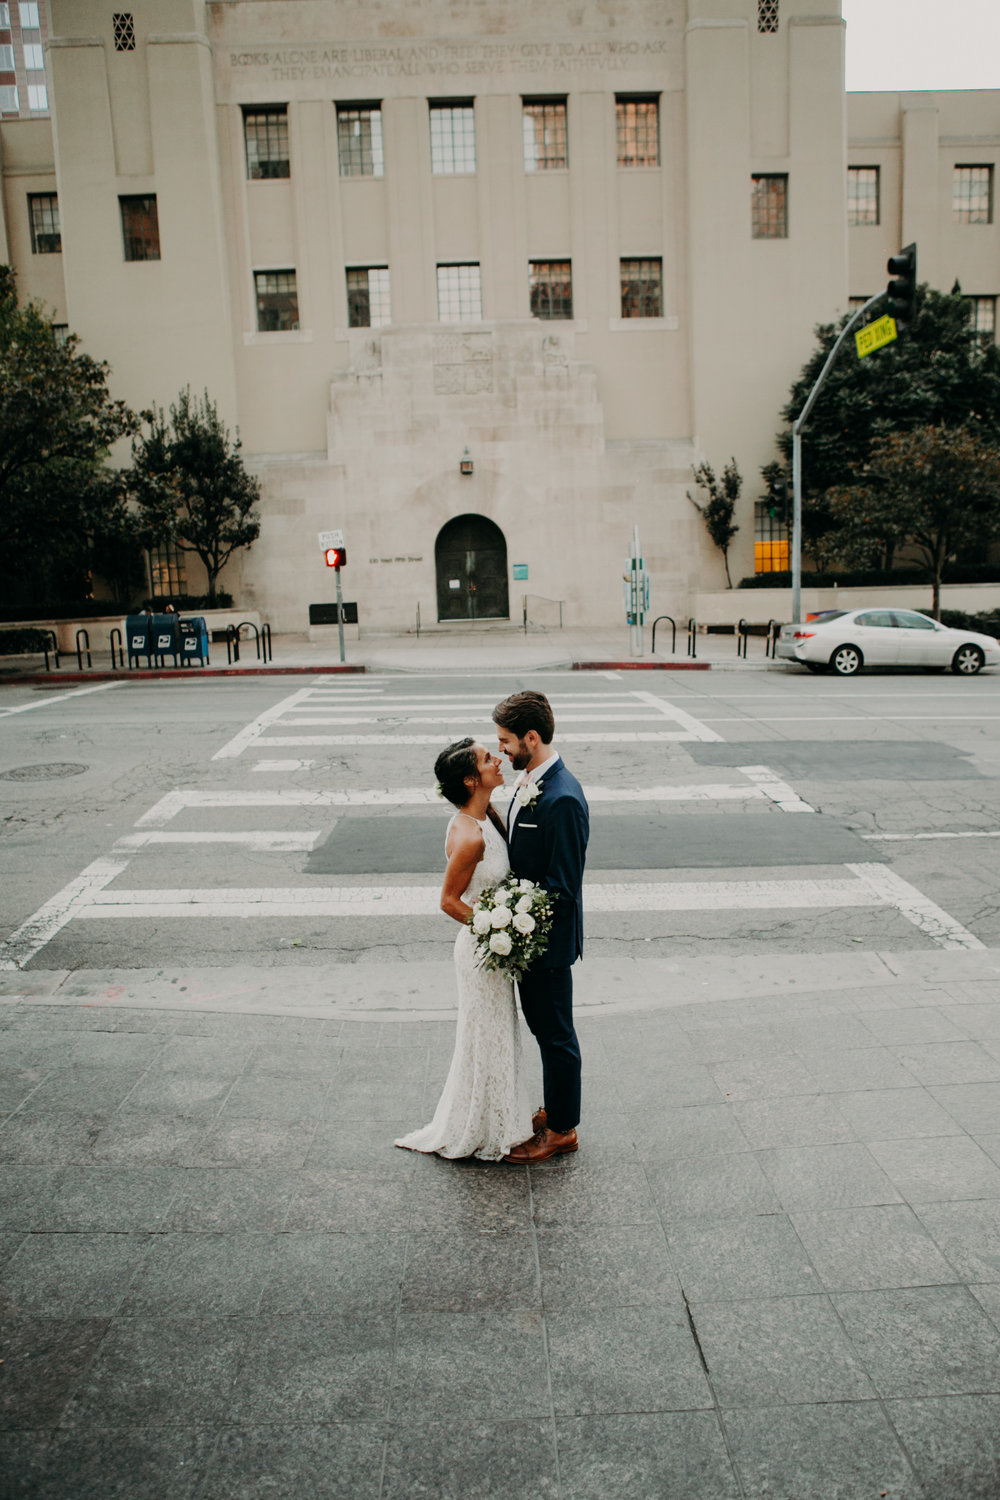 Los Angeles Library Wedding Jonathan & Amelia  Emily Magers Photography-285.jpg